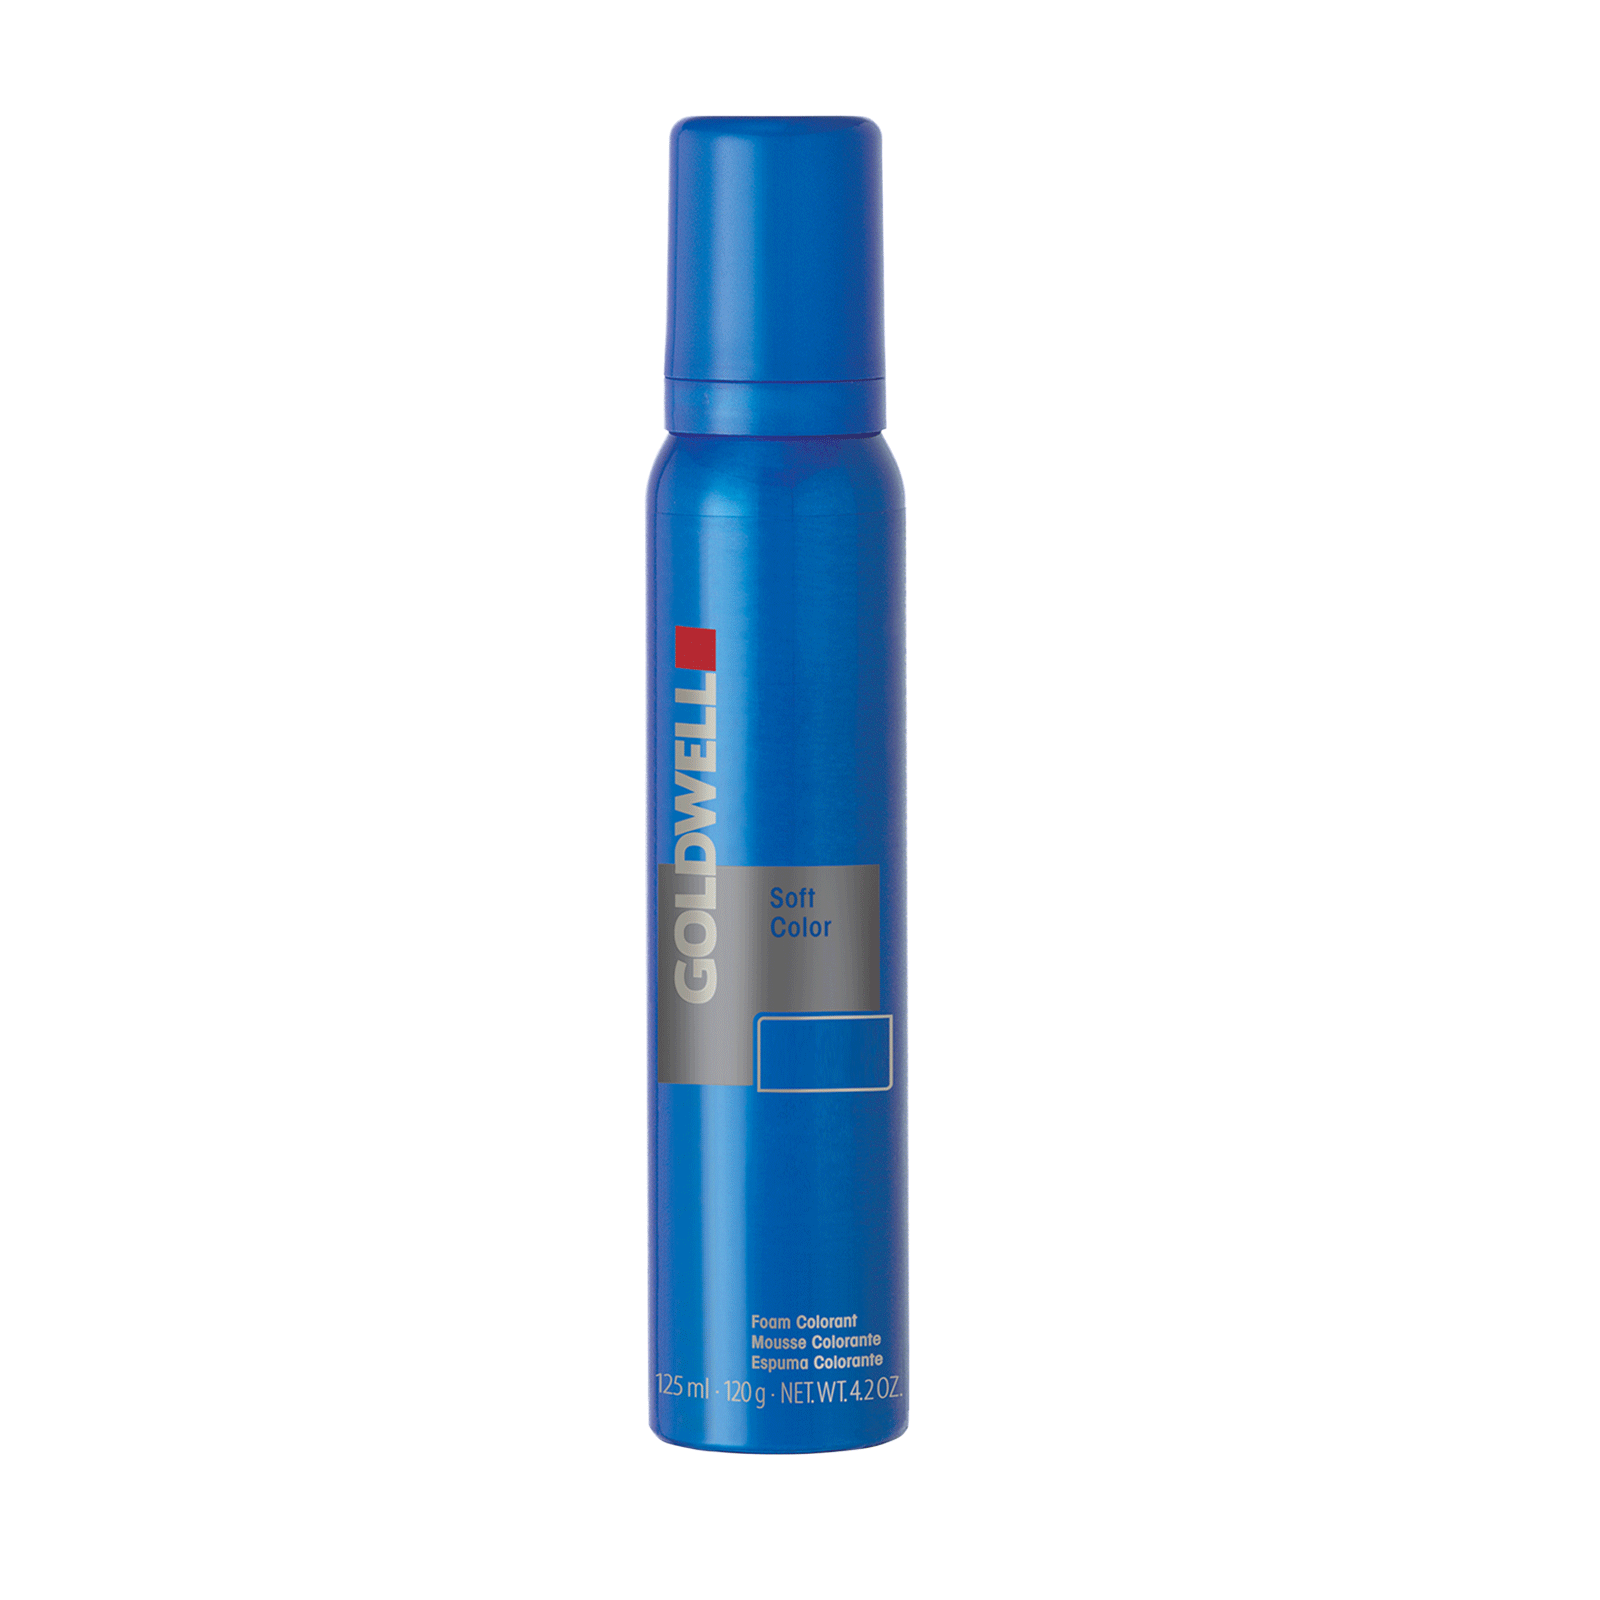 5n Light Brown Soft Color Goldwell Usa Cosmoprof